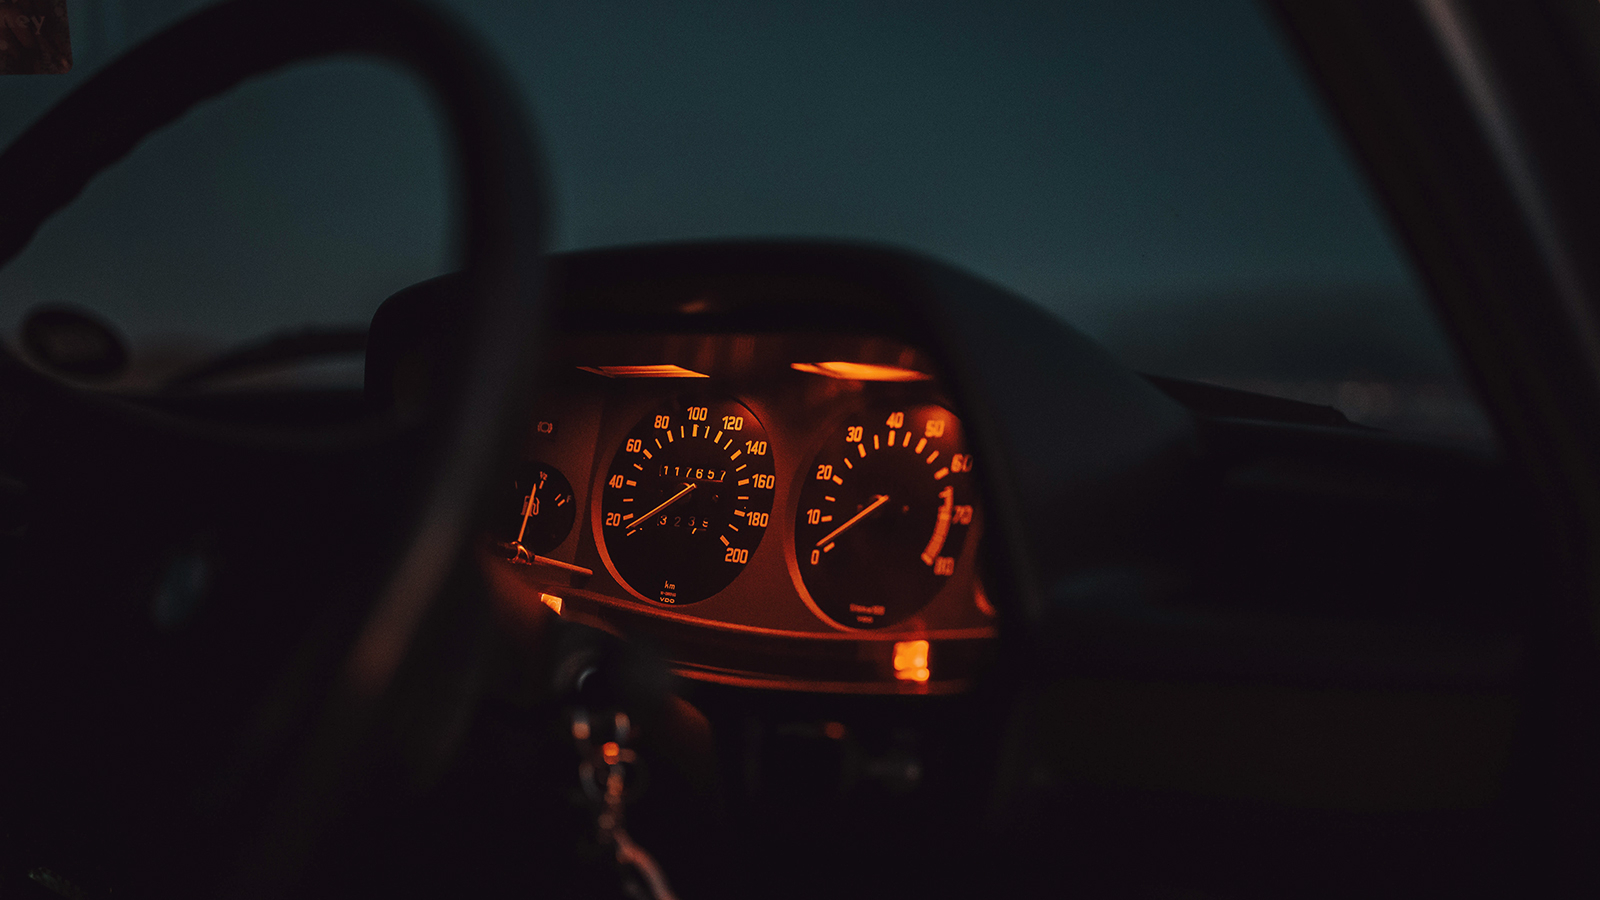 Reduce your Dashboard light